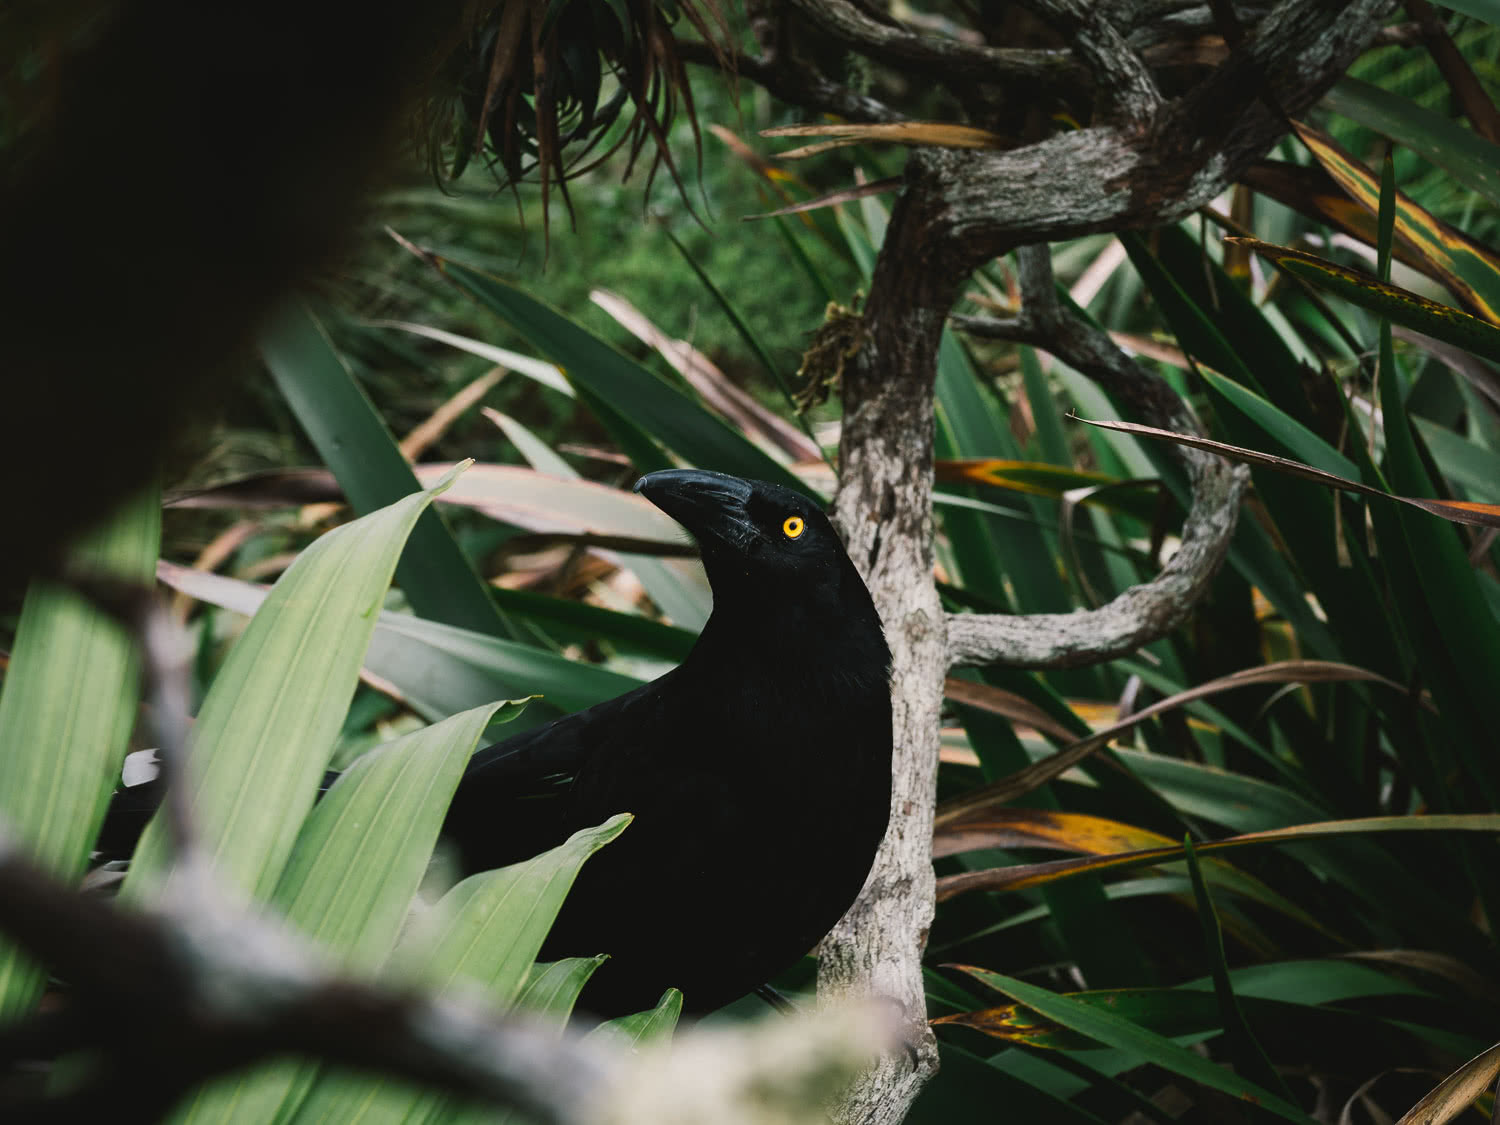 Lord Howe Island's Photography Hot Spots, Matt Horspool, Currawong, bird, wildlife, native, branch, undergrowth